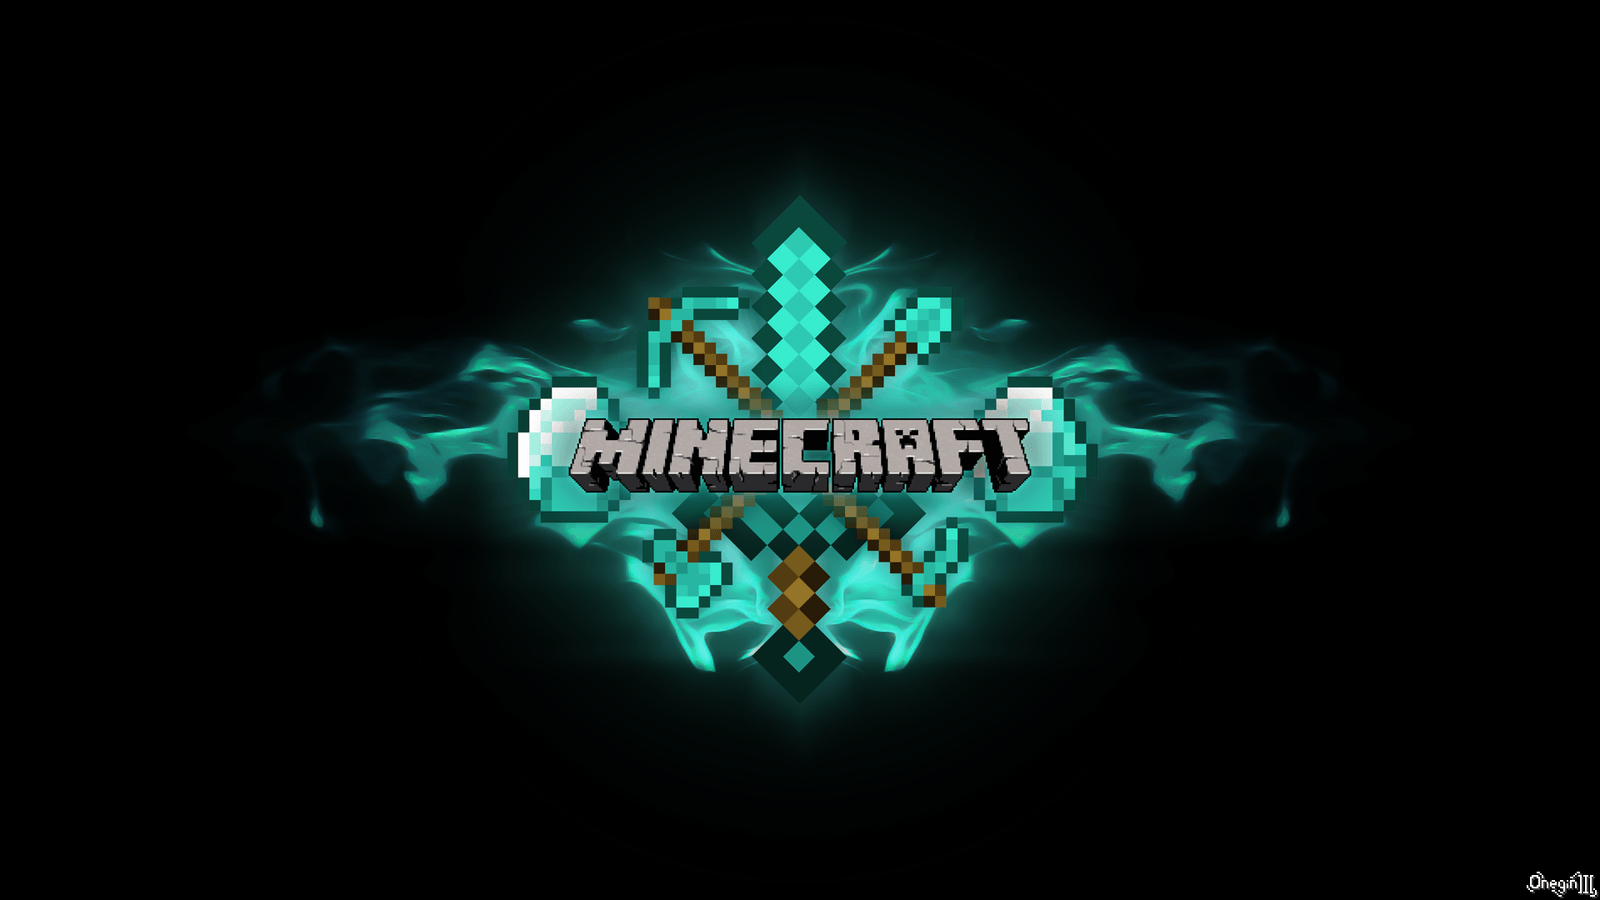 minecraft image wallpapers wallpaper cave